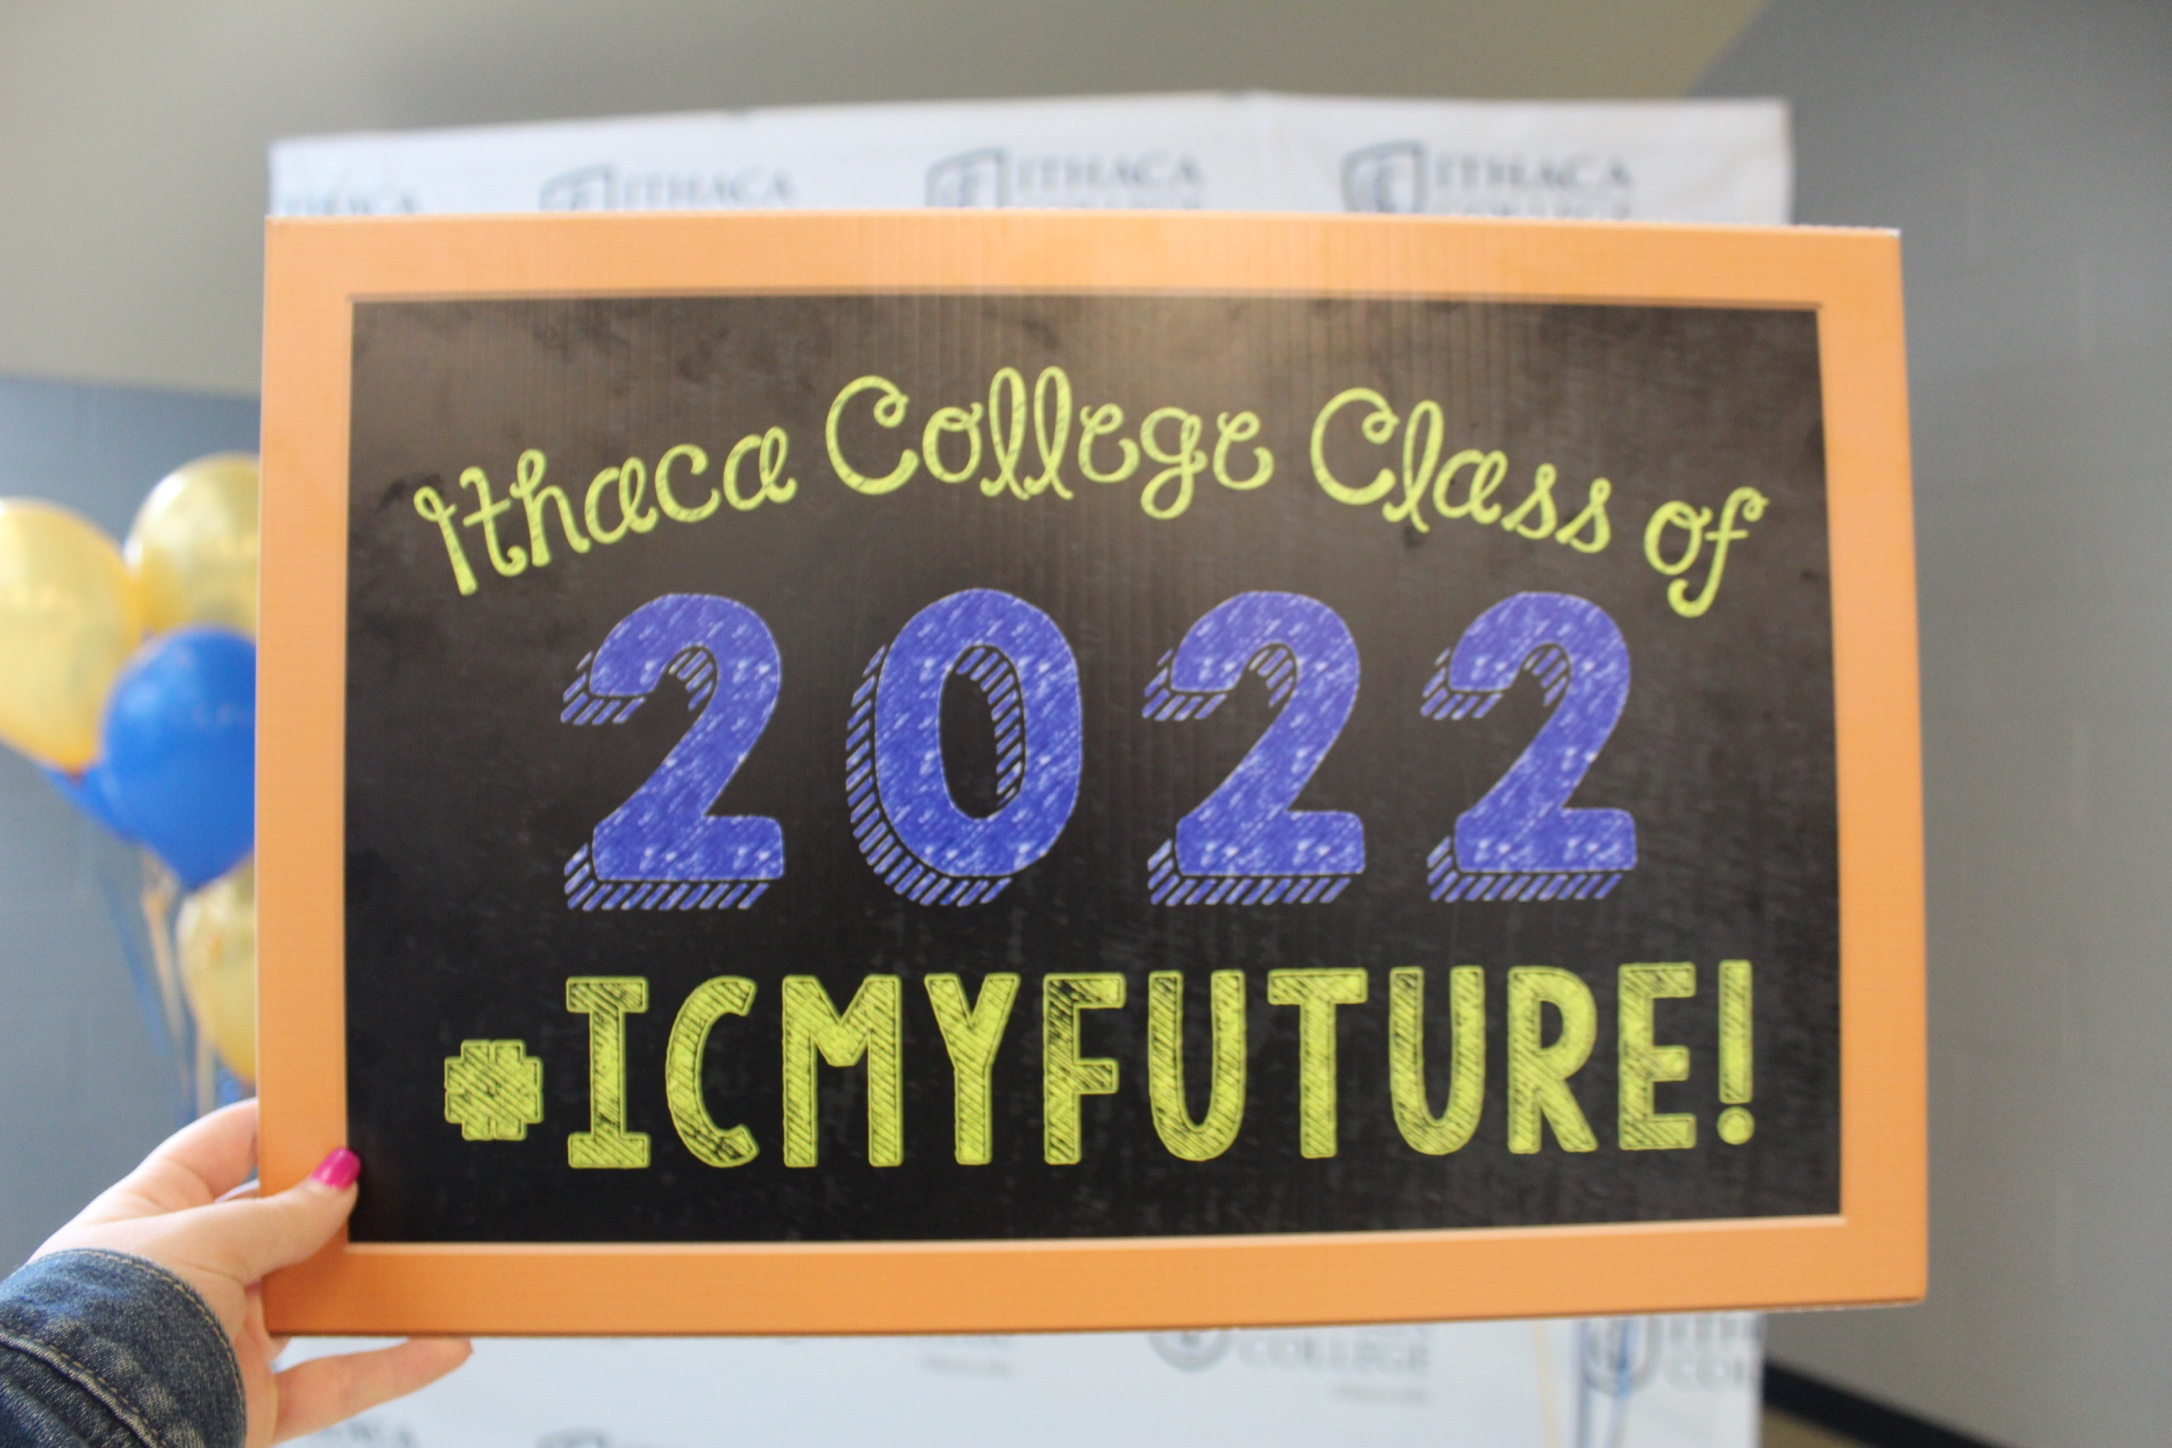 Ithaca College Academic Calendar Spring 2022.The Class Of 2022 Ic News Ithaca College